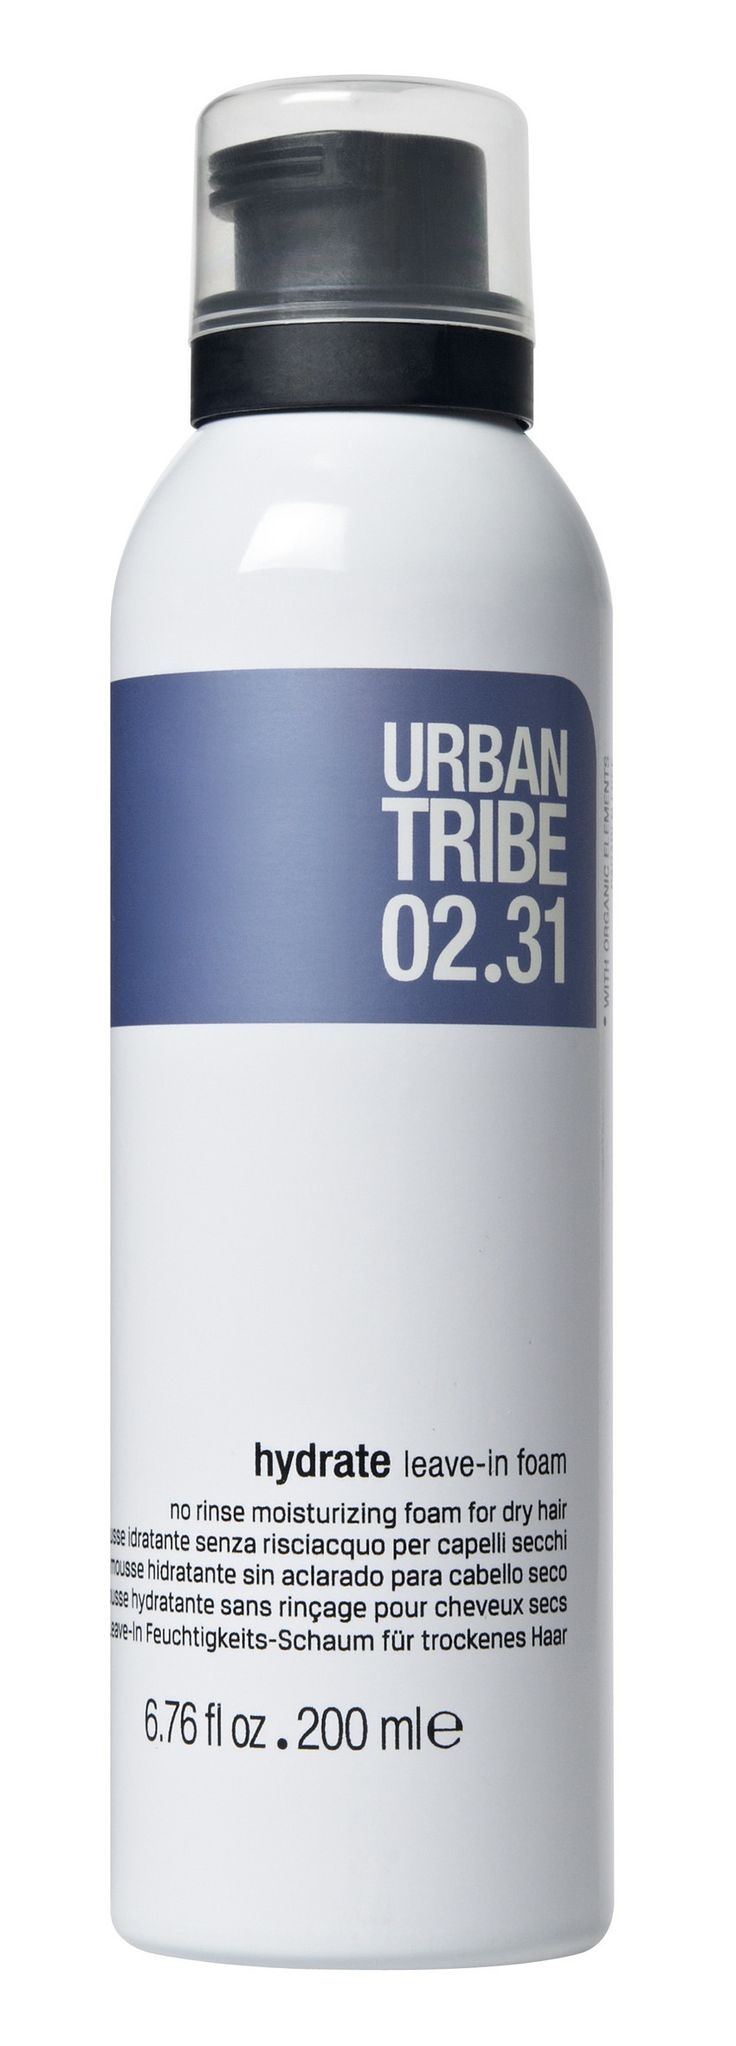 02.31 hydrate leave-in foam: the new moisturizing foam for dry hair by Urban Tribe haircare!